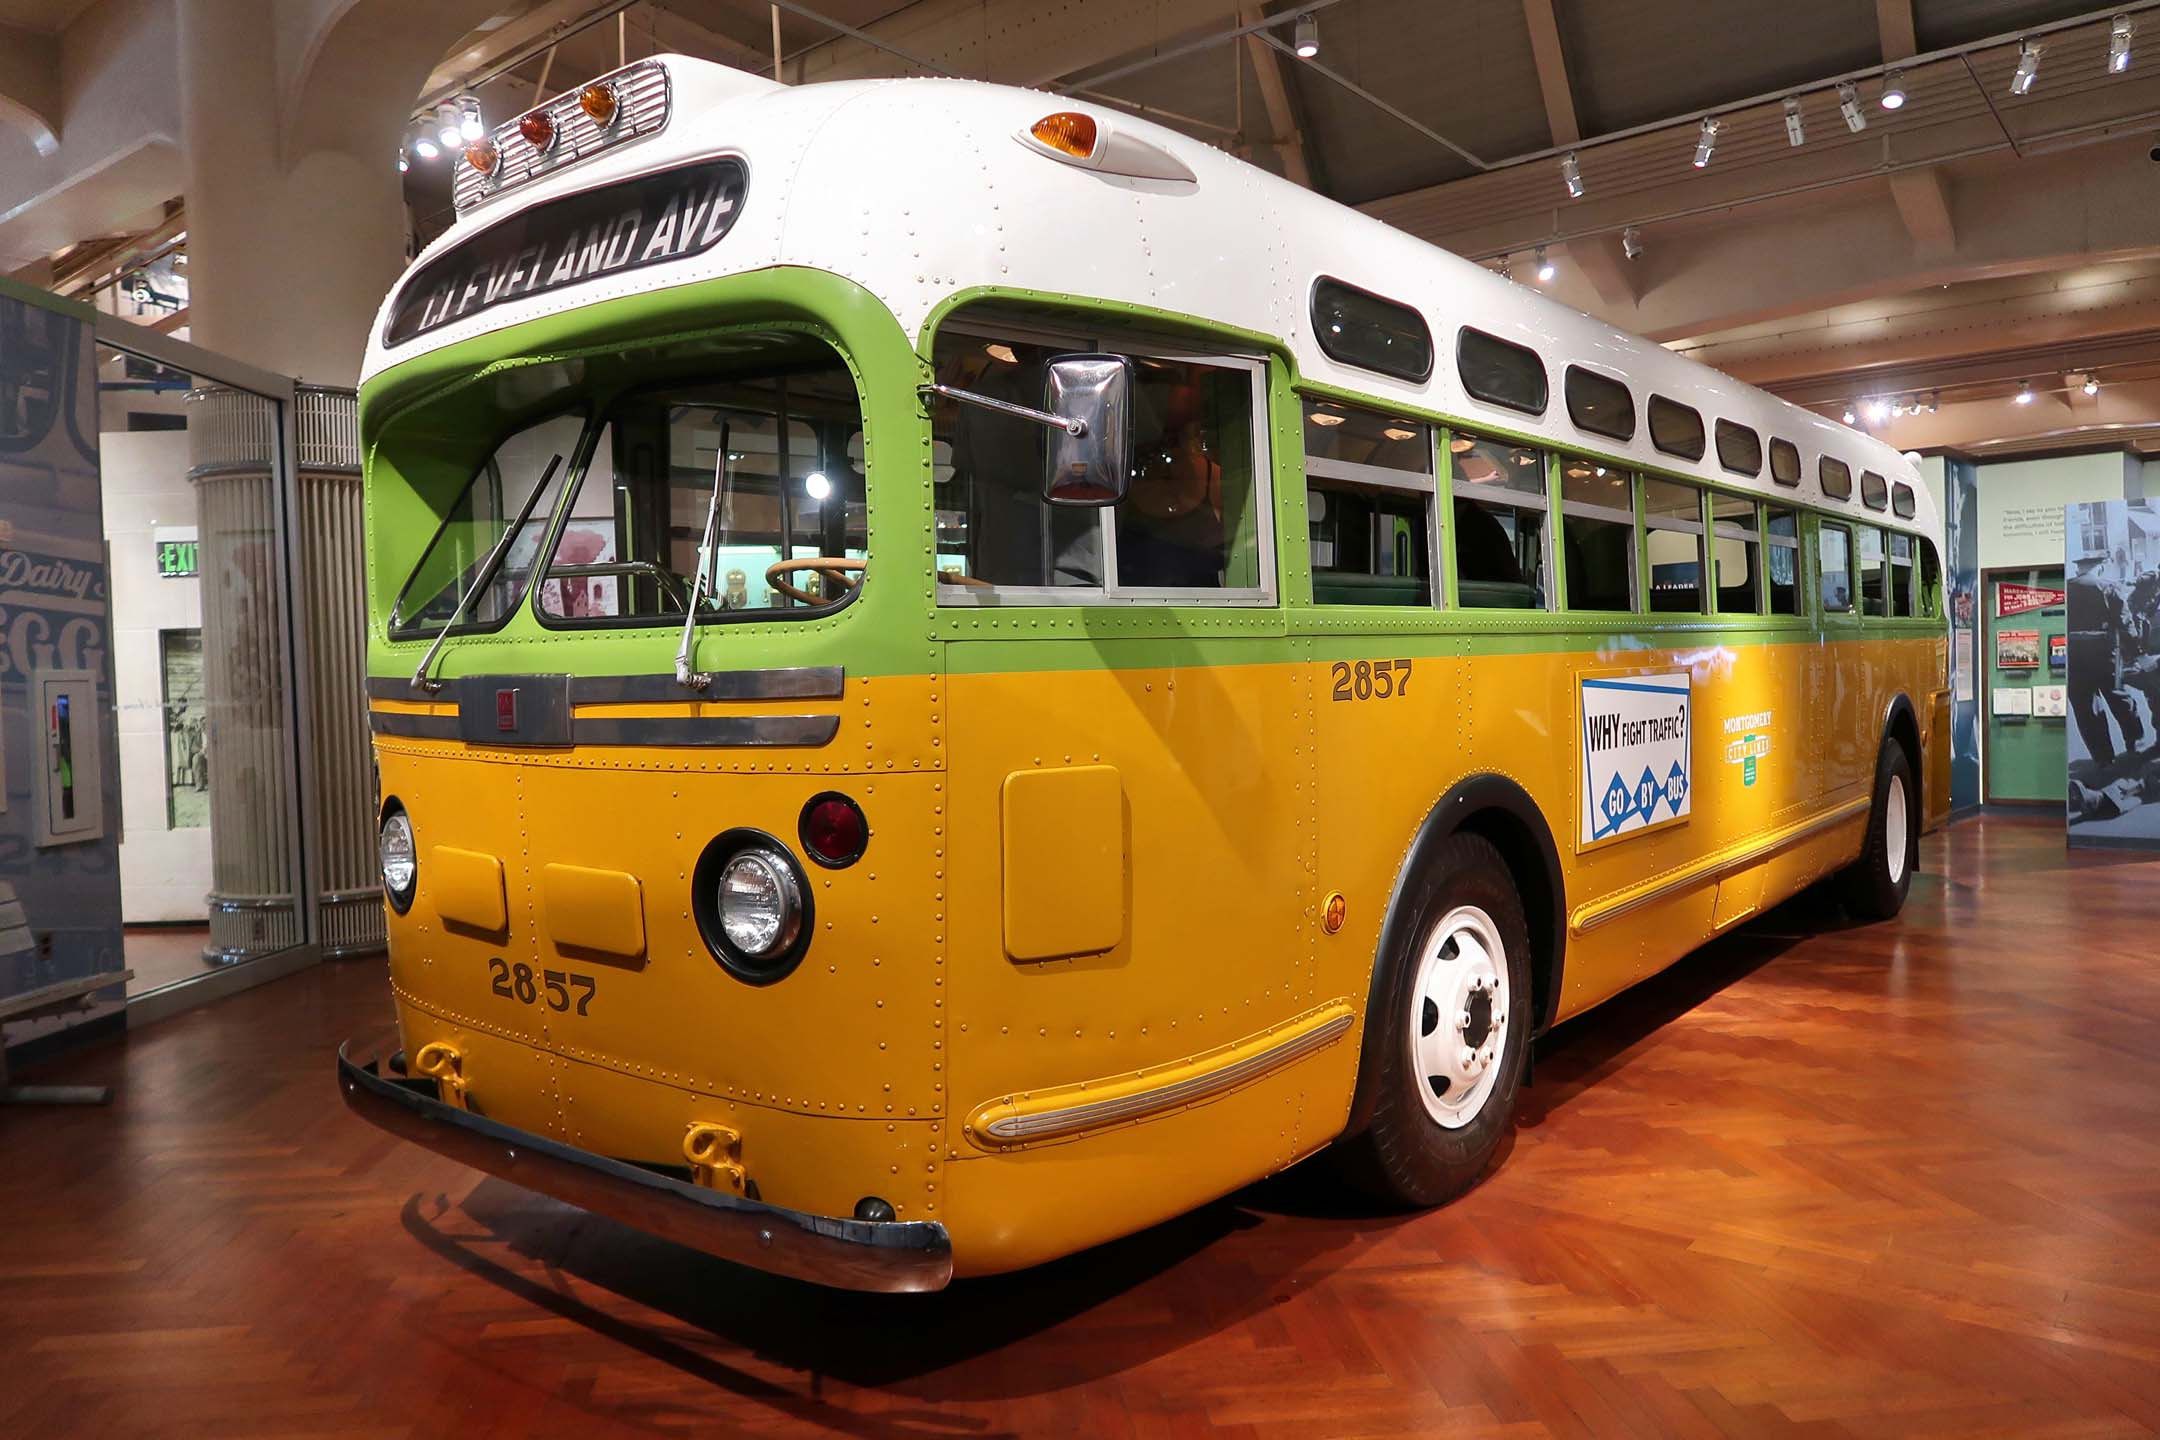 Rosa Parks refused to give up her seat on this bus, which ultimately led to desegregation on the bus line